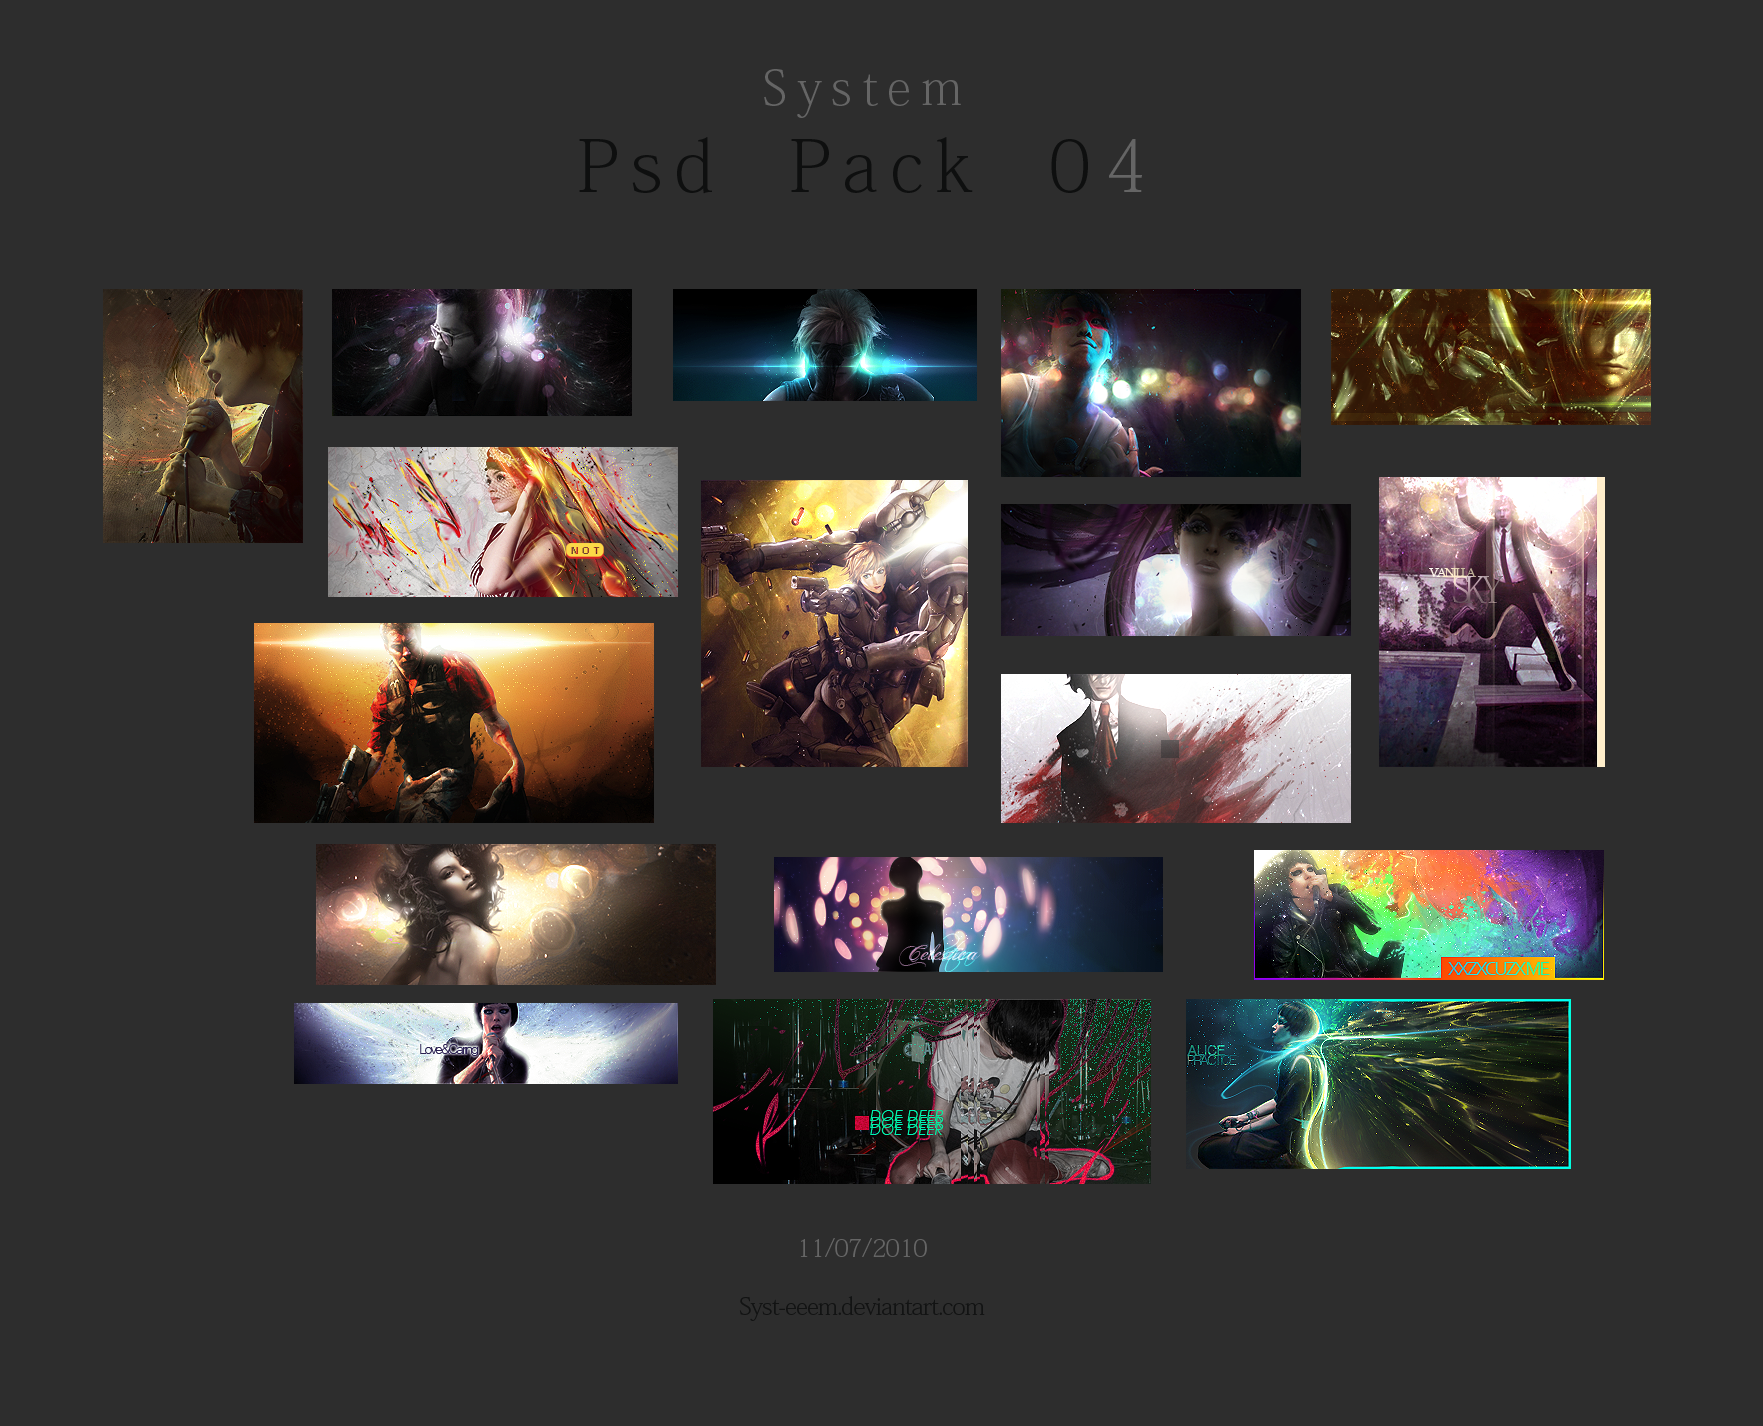 Psd Pack 04 Psd_Pack_04_by_Syst_eeem